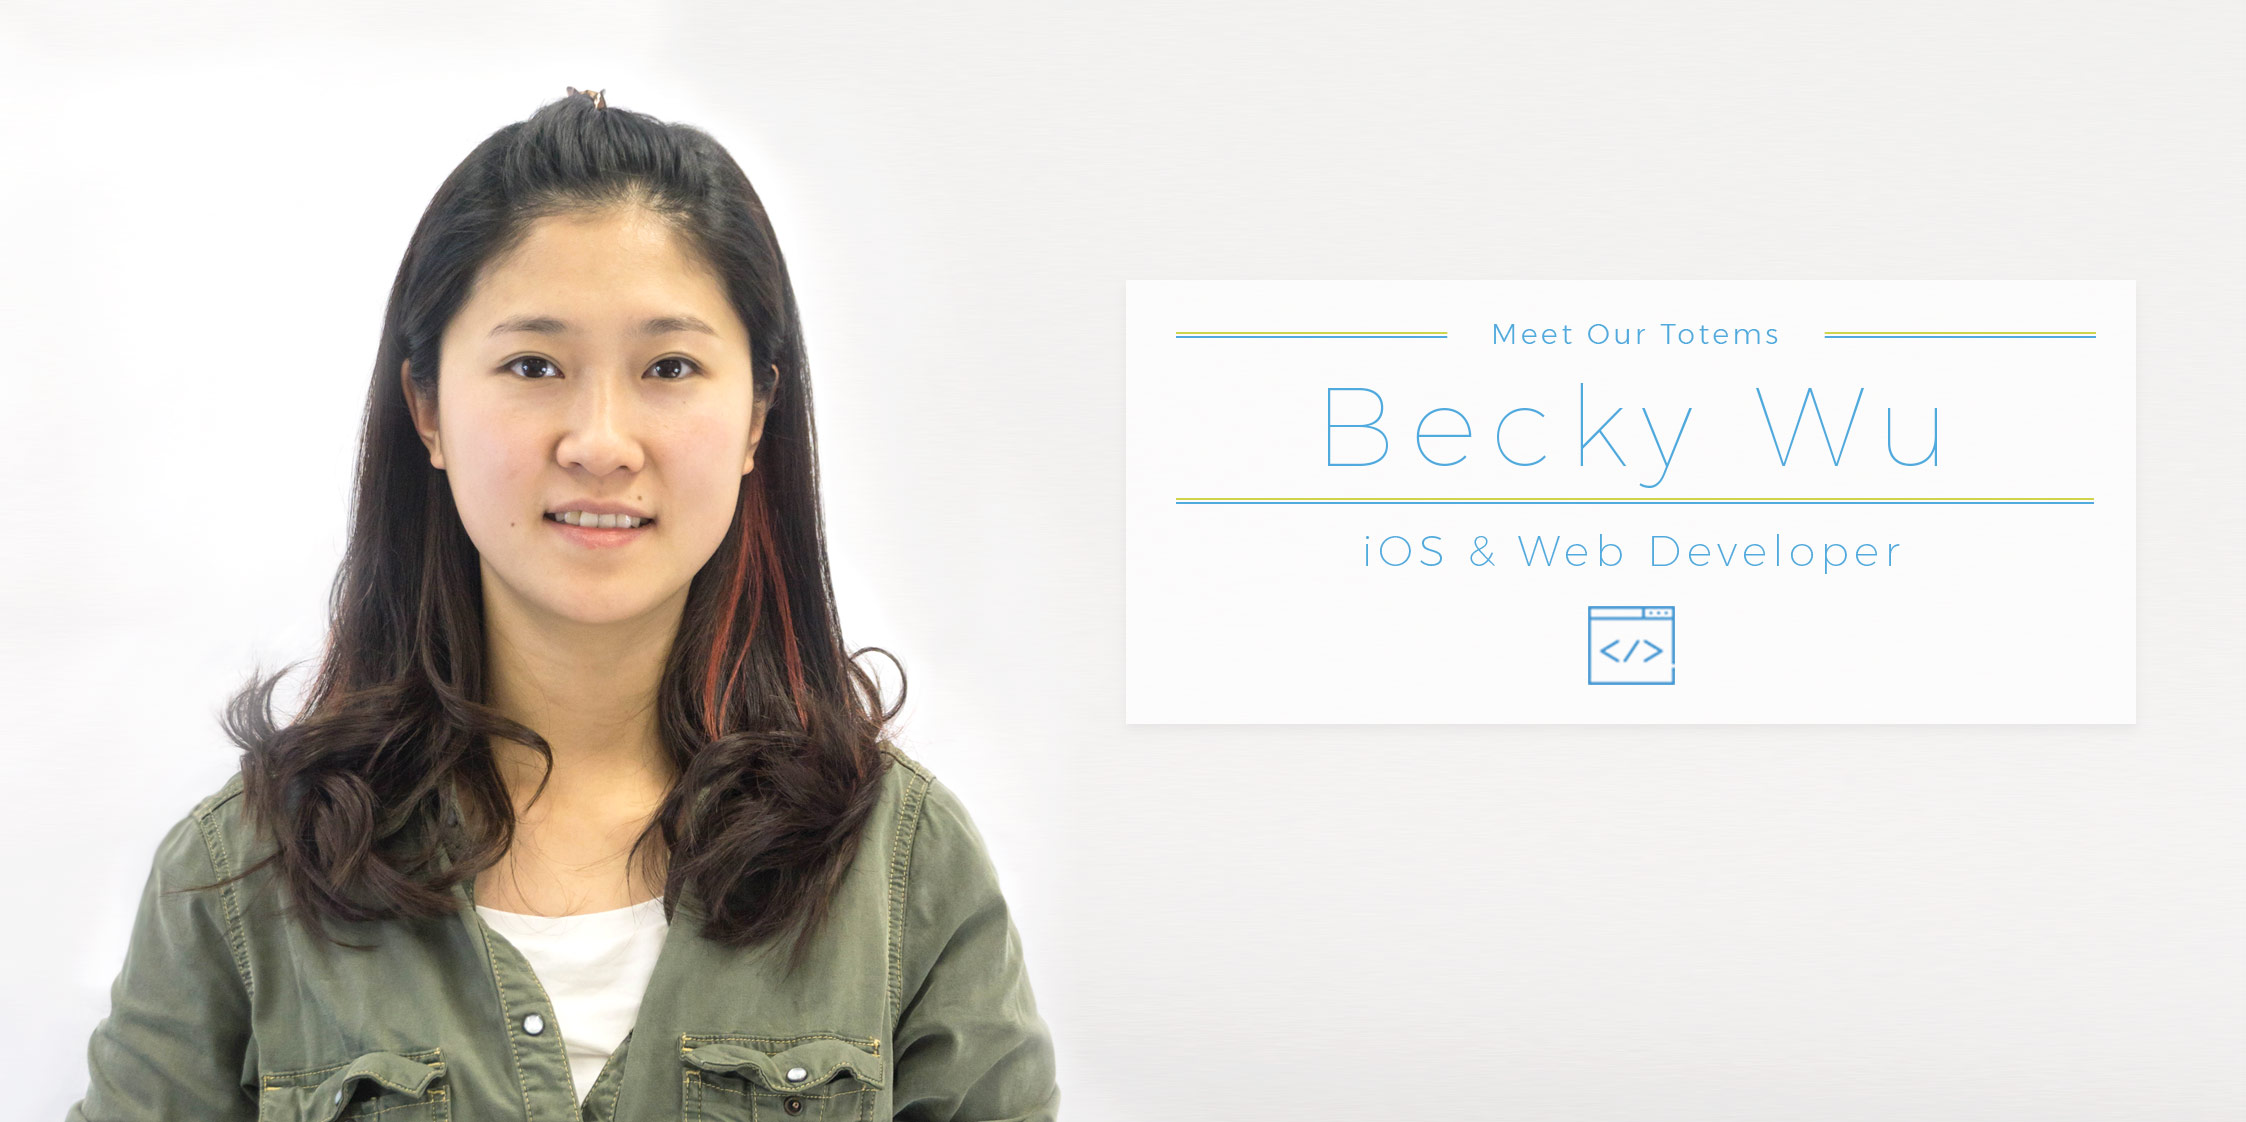 Meet Our Totems – Becky